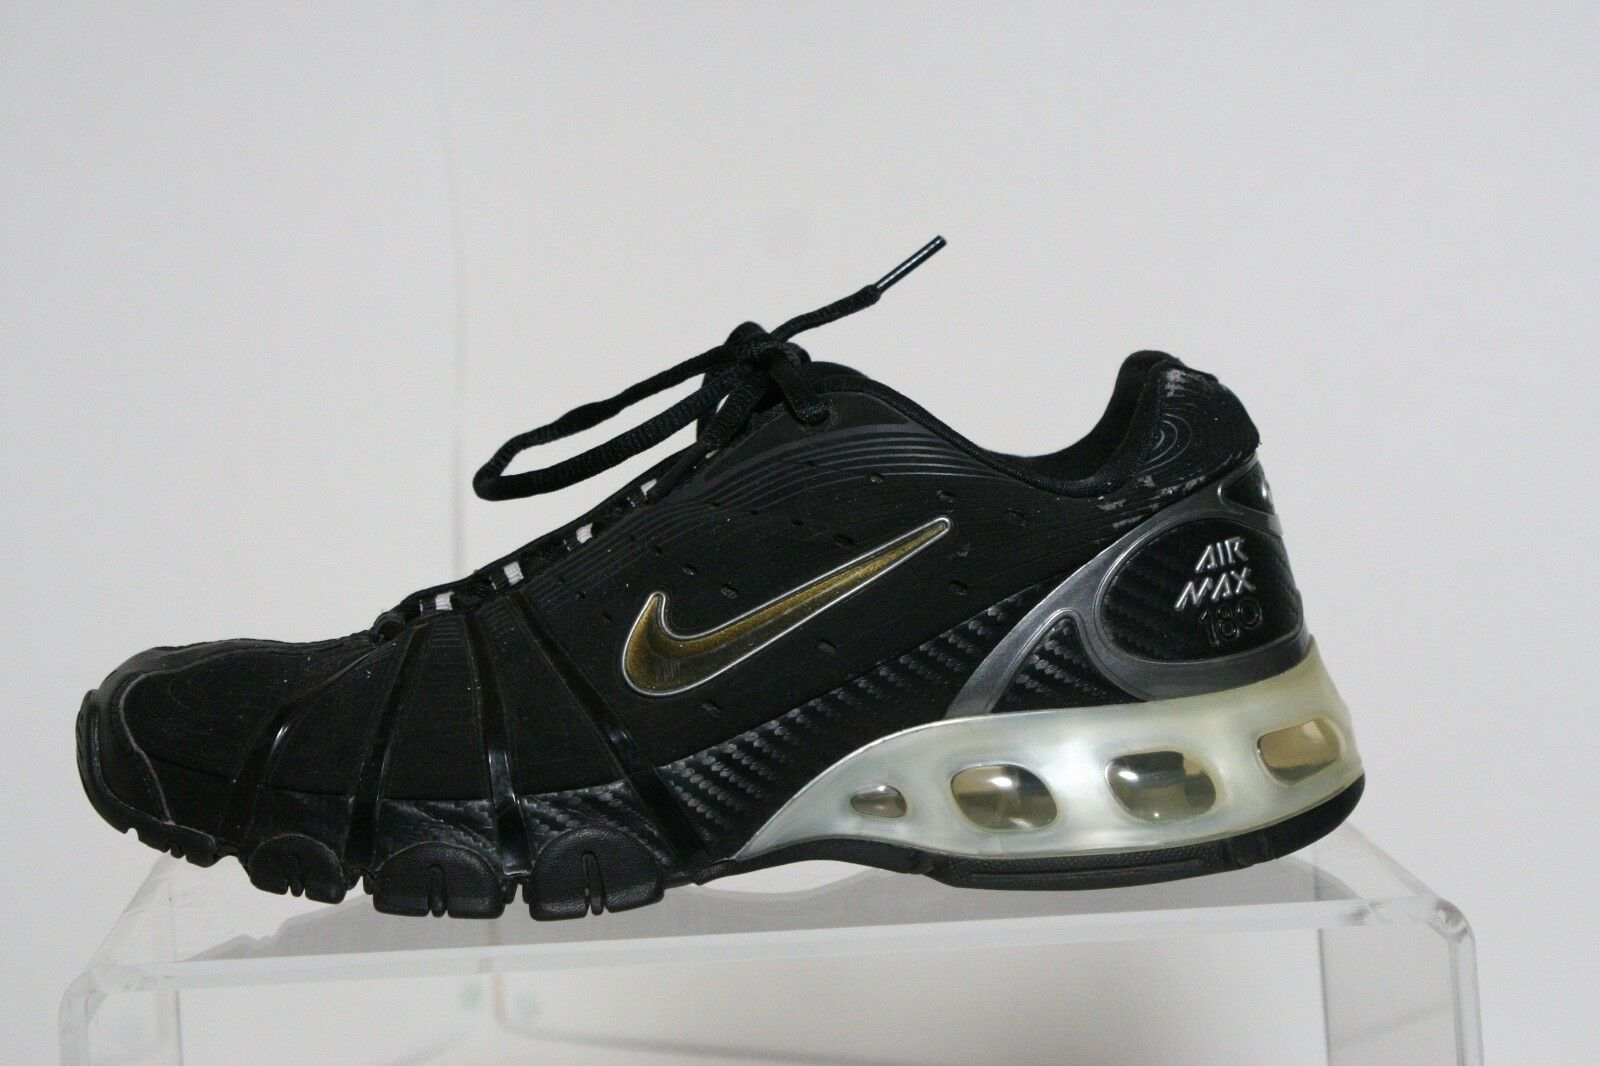 Nike 180 air max. 180 Nike '06 läuft sneaker athletic multi - schwarze 8,5 hippen retro 832131